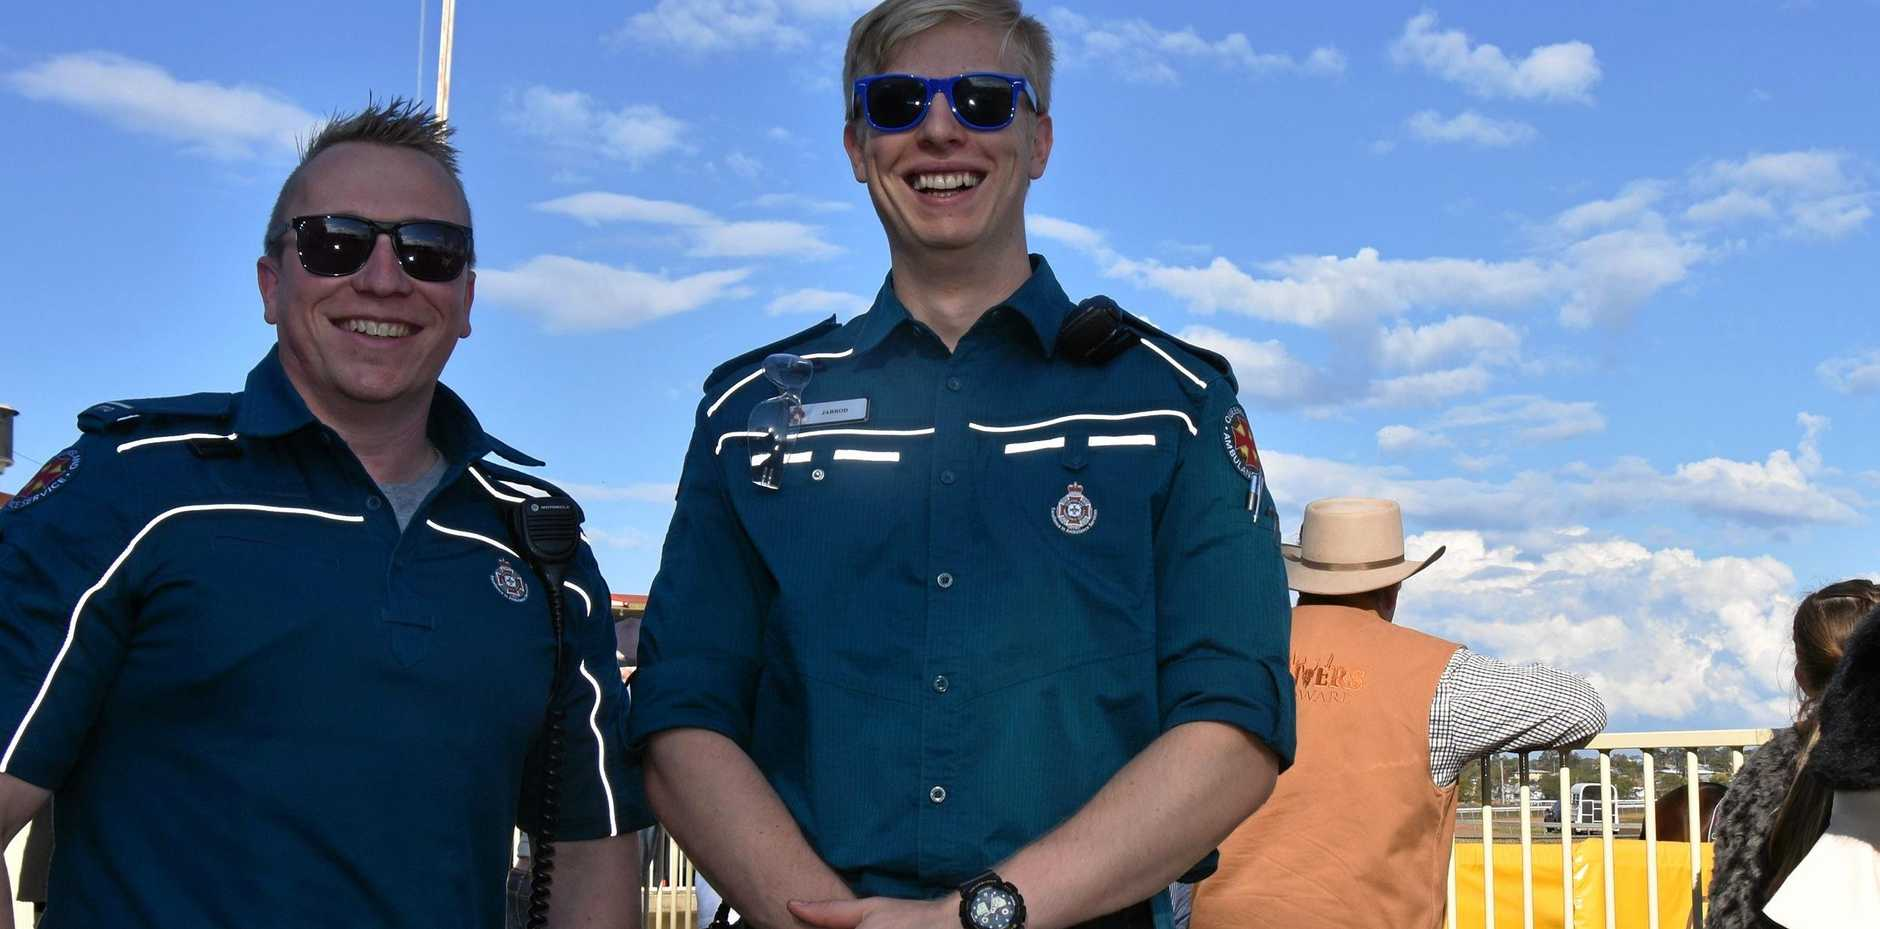 HAPPY TO HELP: Paramedics Marcus Wilson and Jarrod Walker were glad to be able to assist the woman at the Killarney Cup.